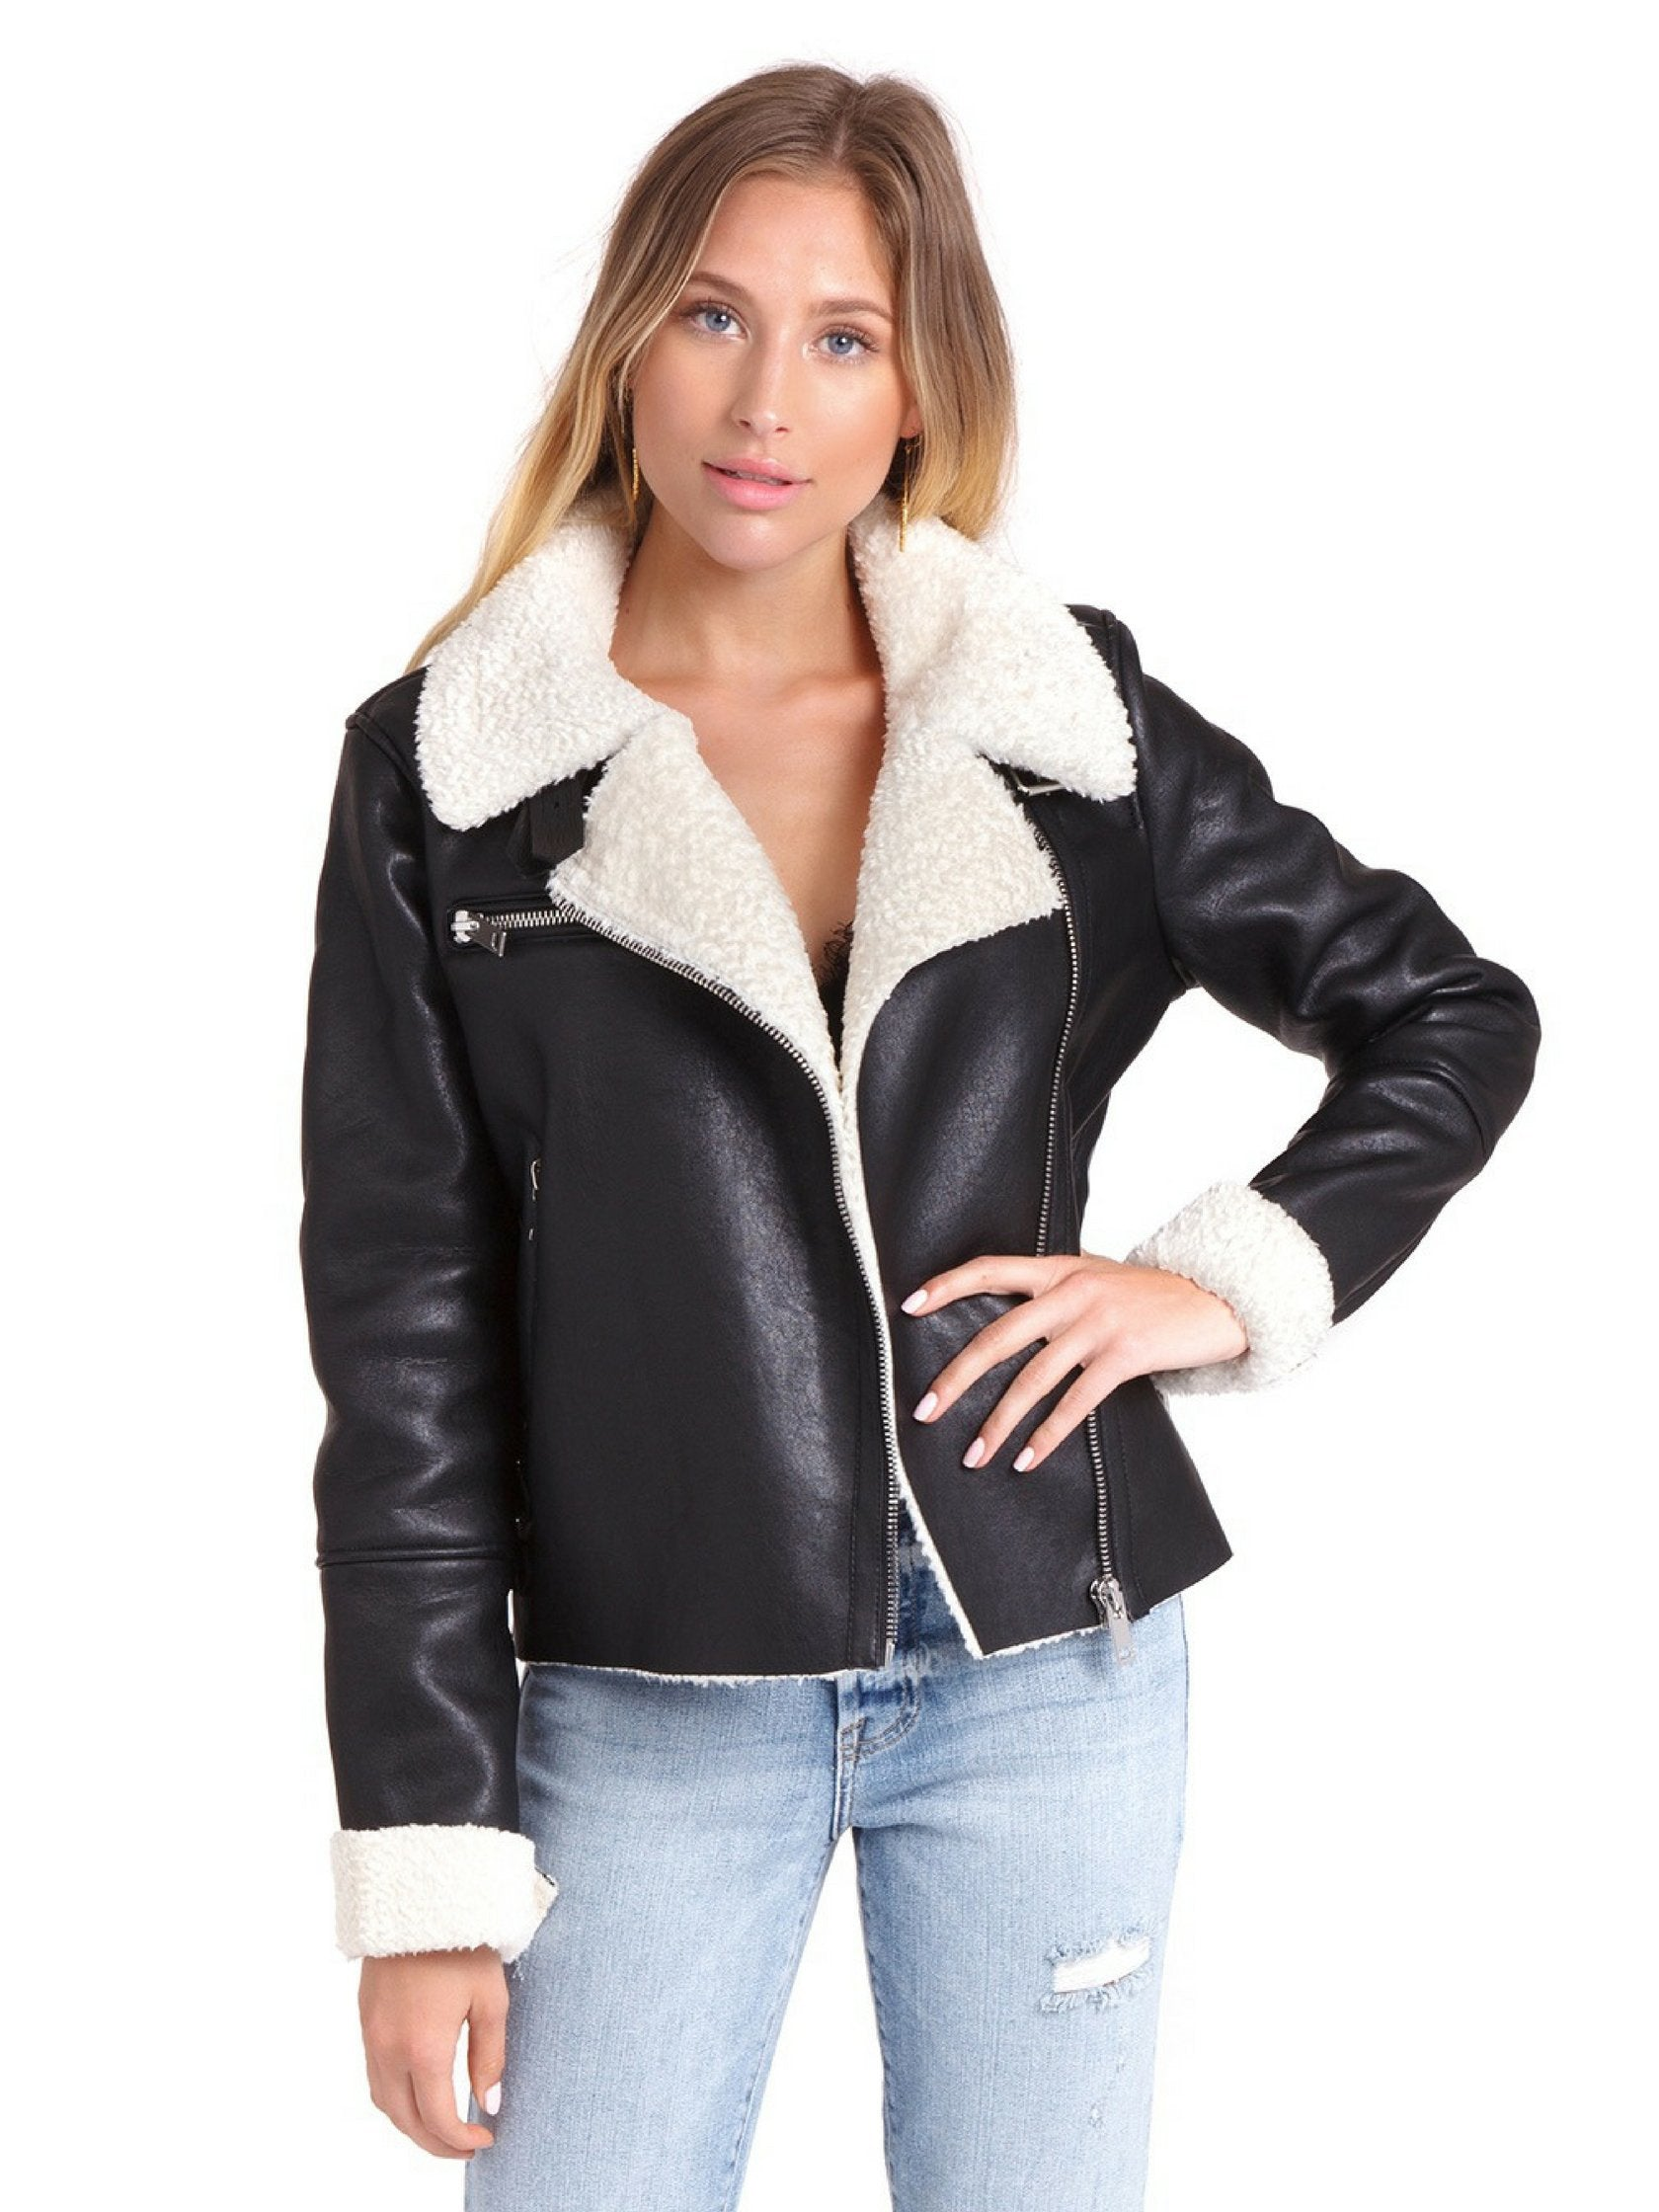 Woman wearing a jacket rental from BLANKNYC called Silent Night Jacket